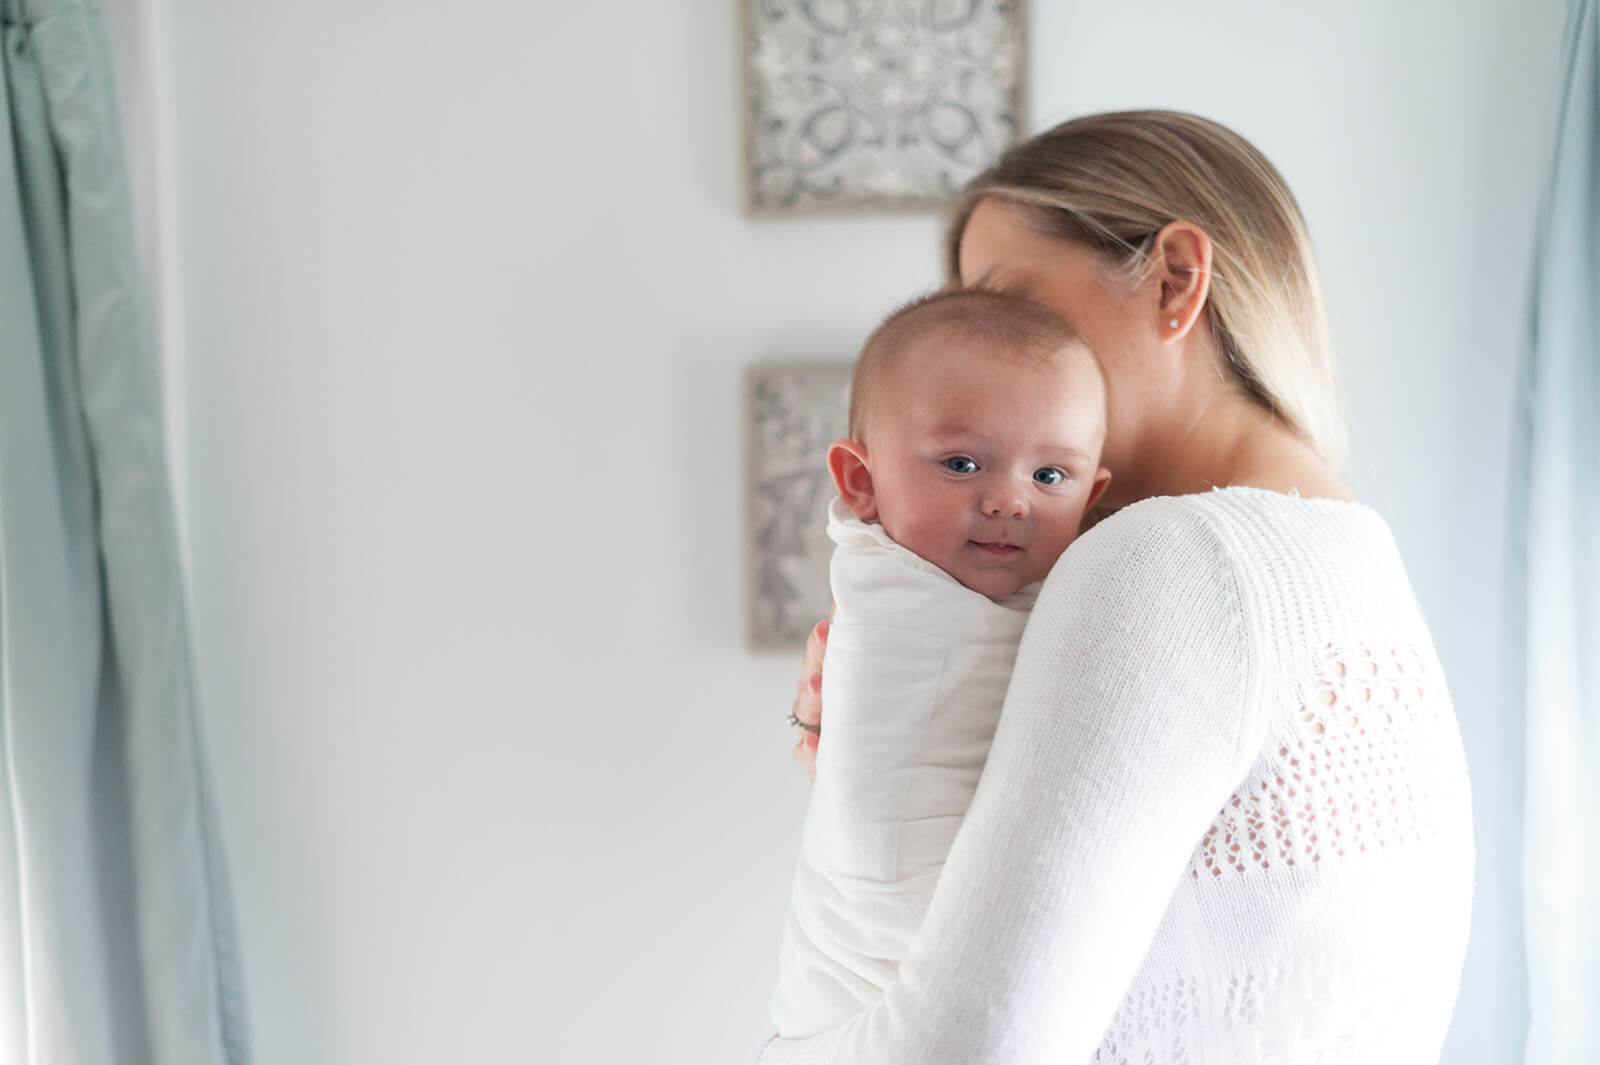 The Zen Swaddle - A Weighted Swaddle Blanket